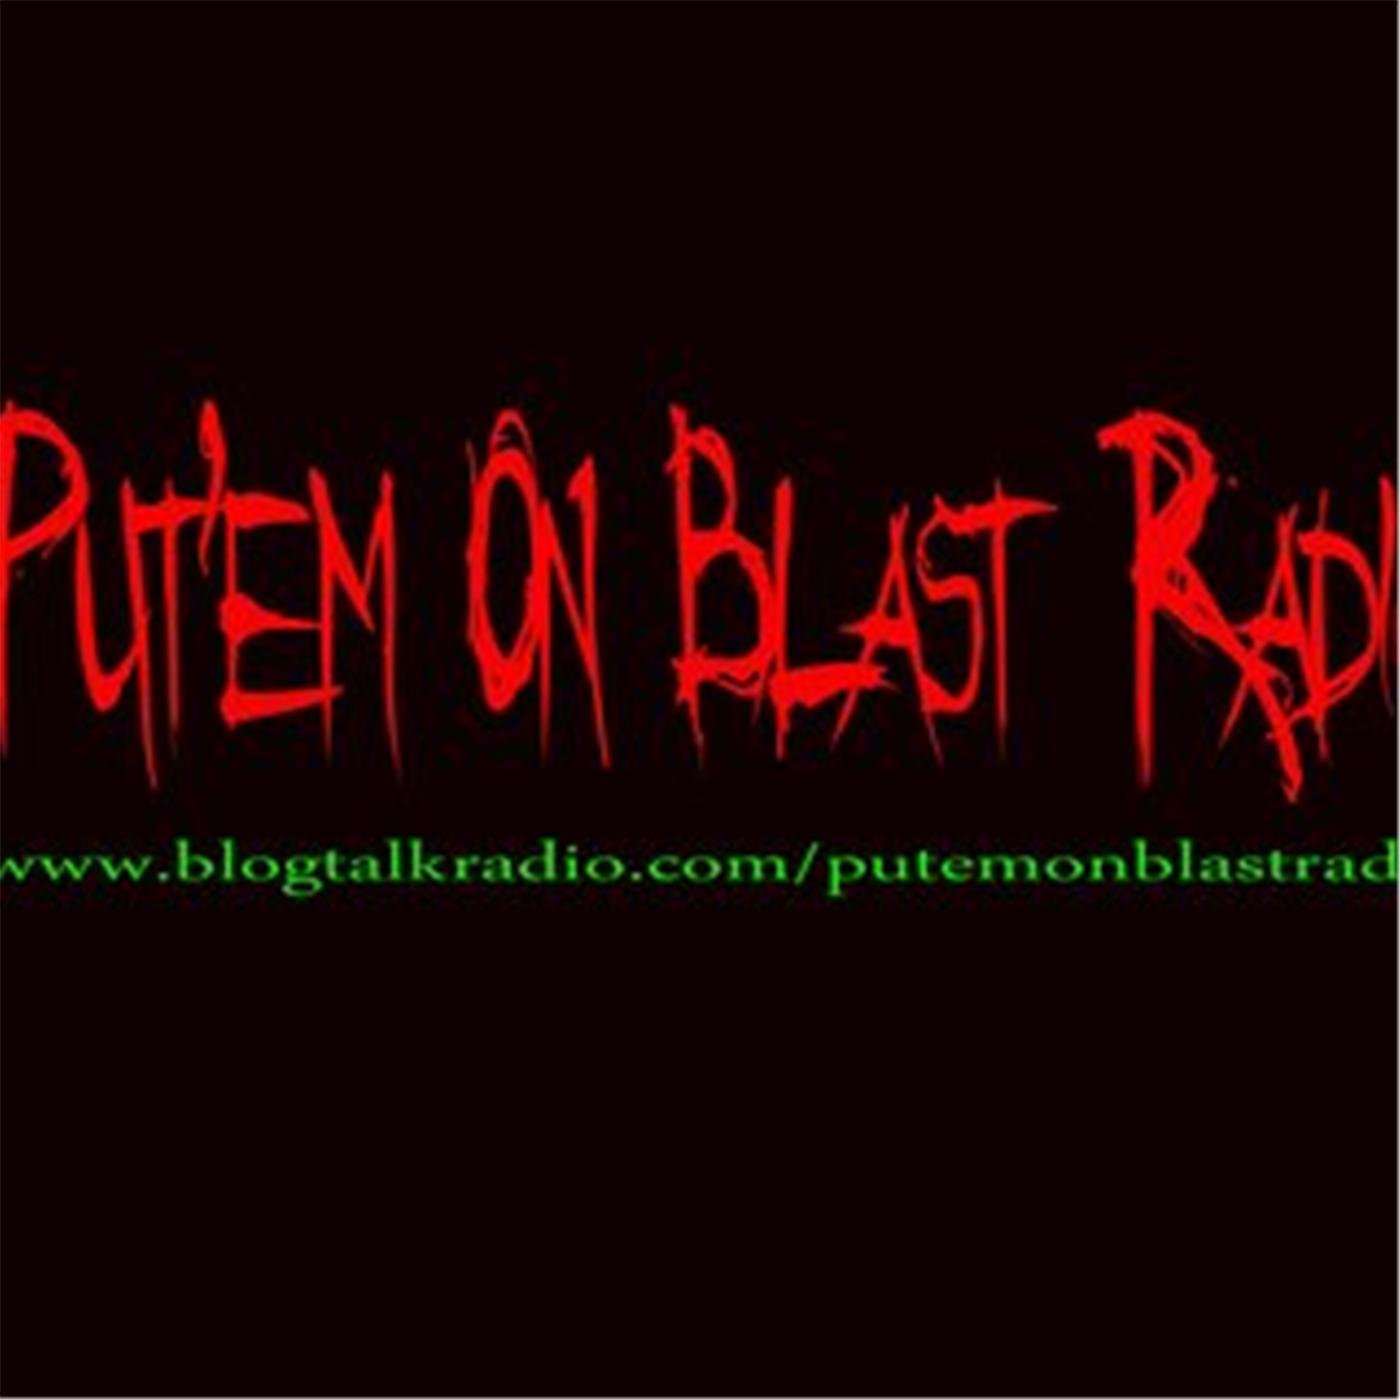 Put'em on blast Radio